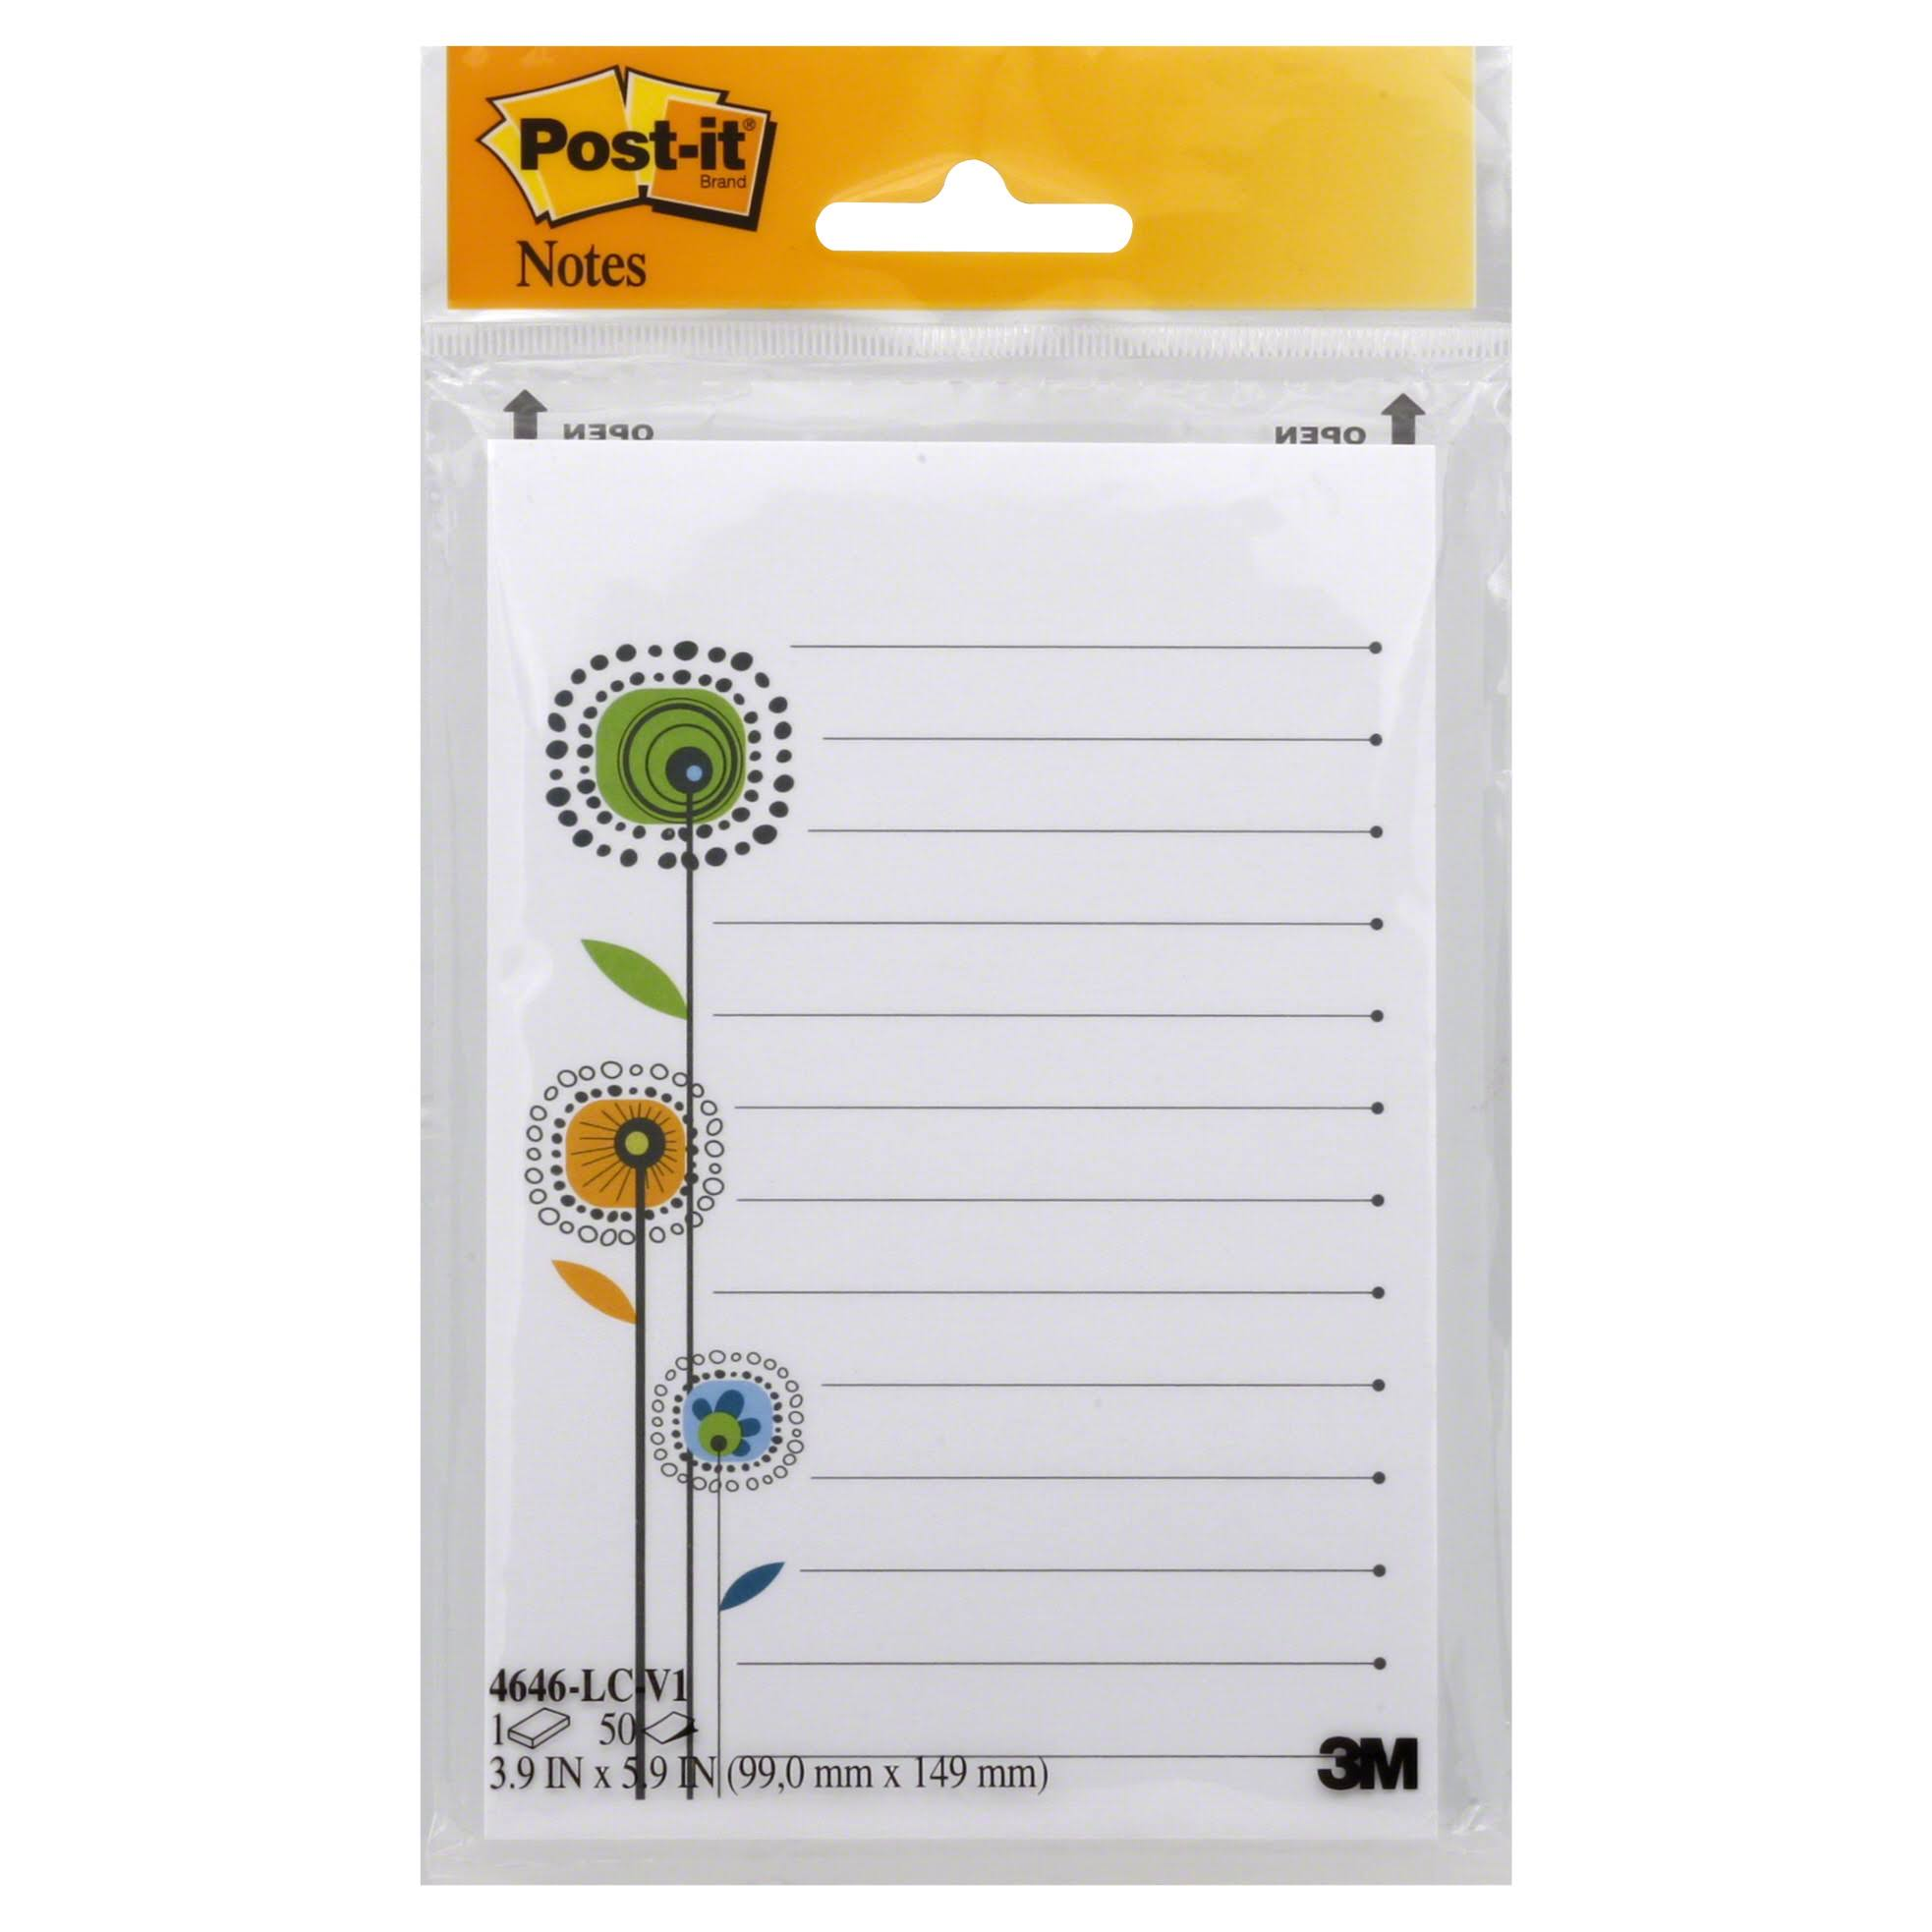 "3M Dv Trend Printed Notes Pad - 4"" x 6"", 50 Sheets"